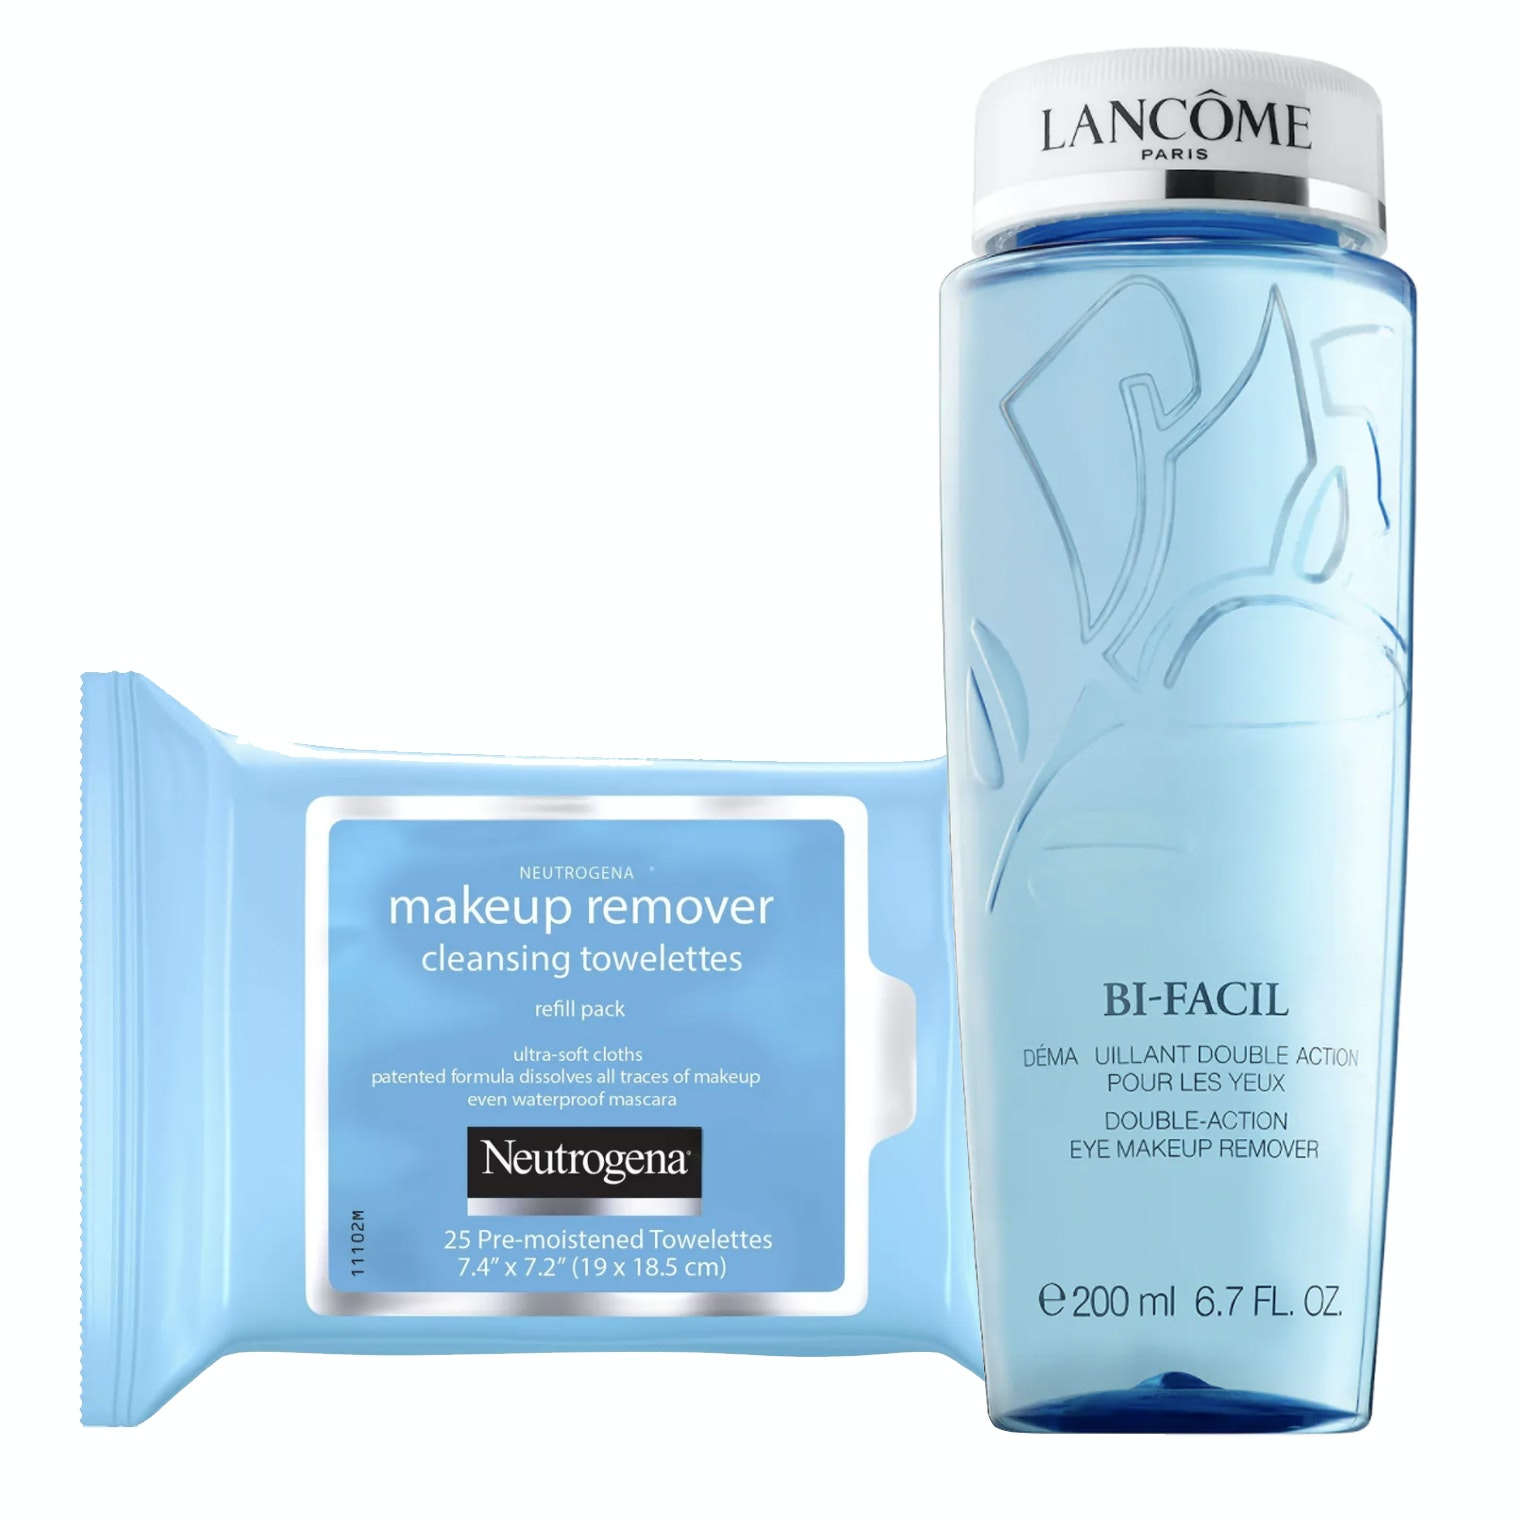 Lancôme® Bi-Facil® Double-Action Eye Makeup Remover